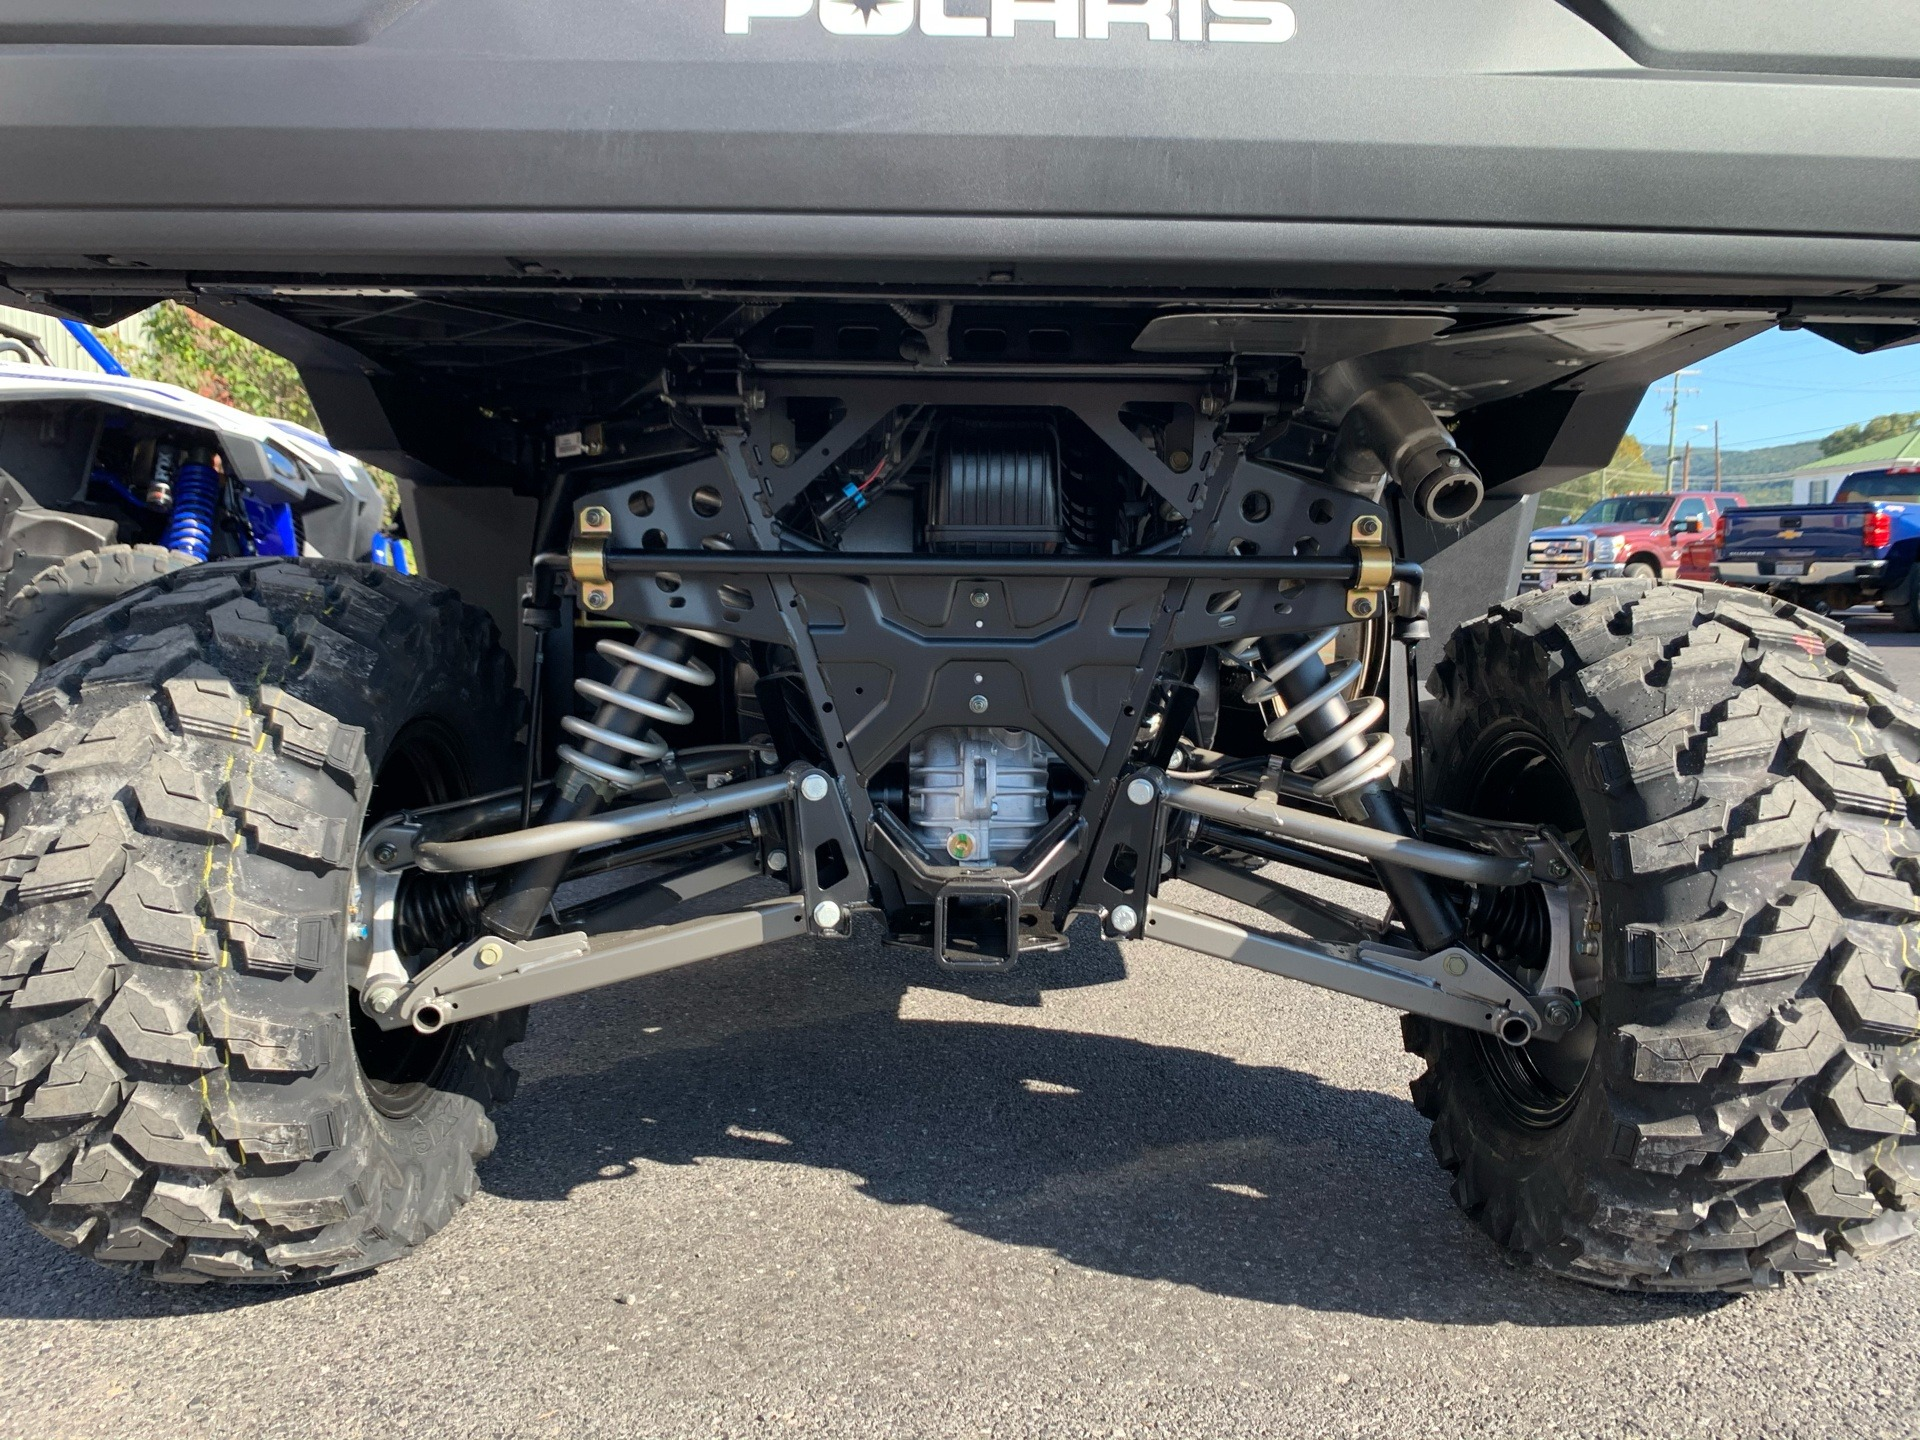 2021 Polaris Ranger XP 1000 Premium in Petersburg, West Virginia - Photo 12